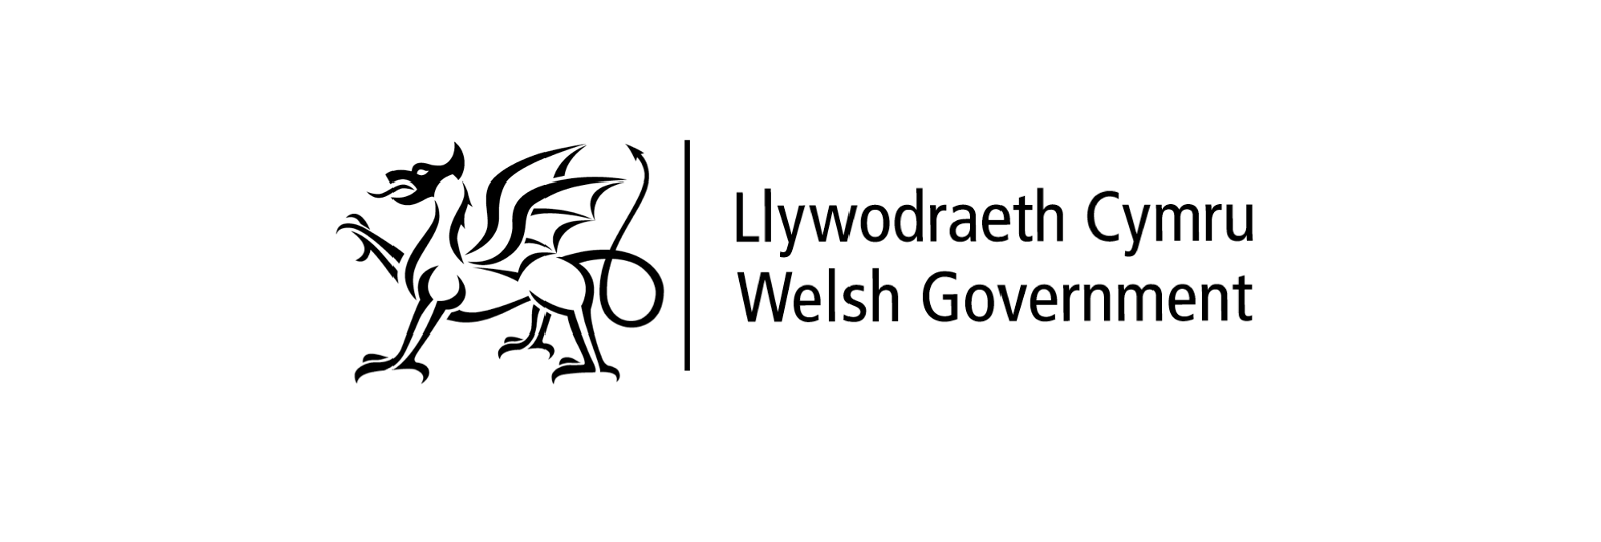 Home 2- Client 3 -welsh gov